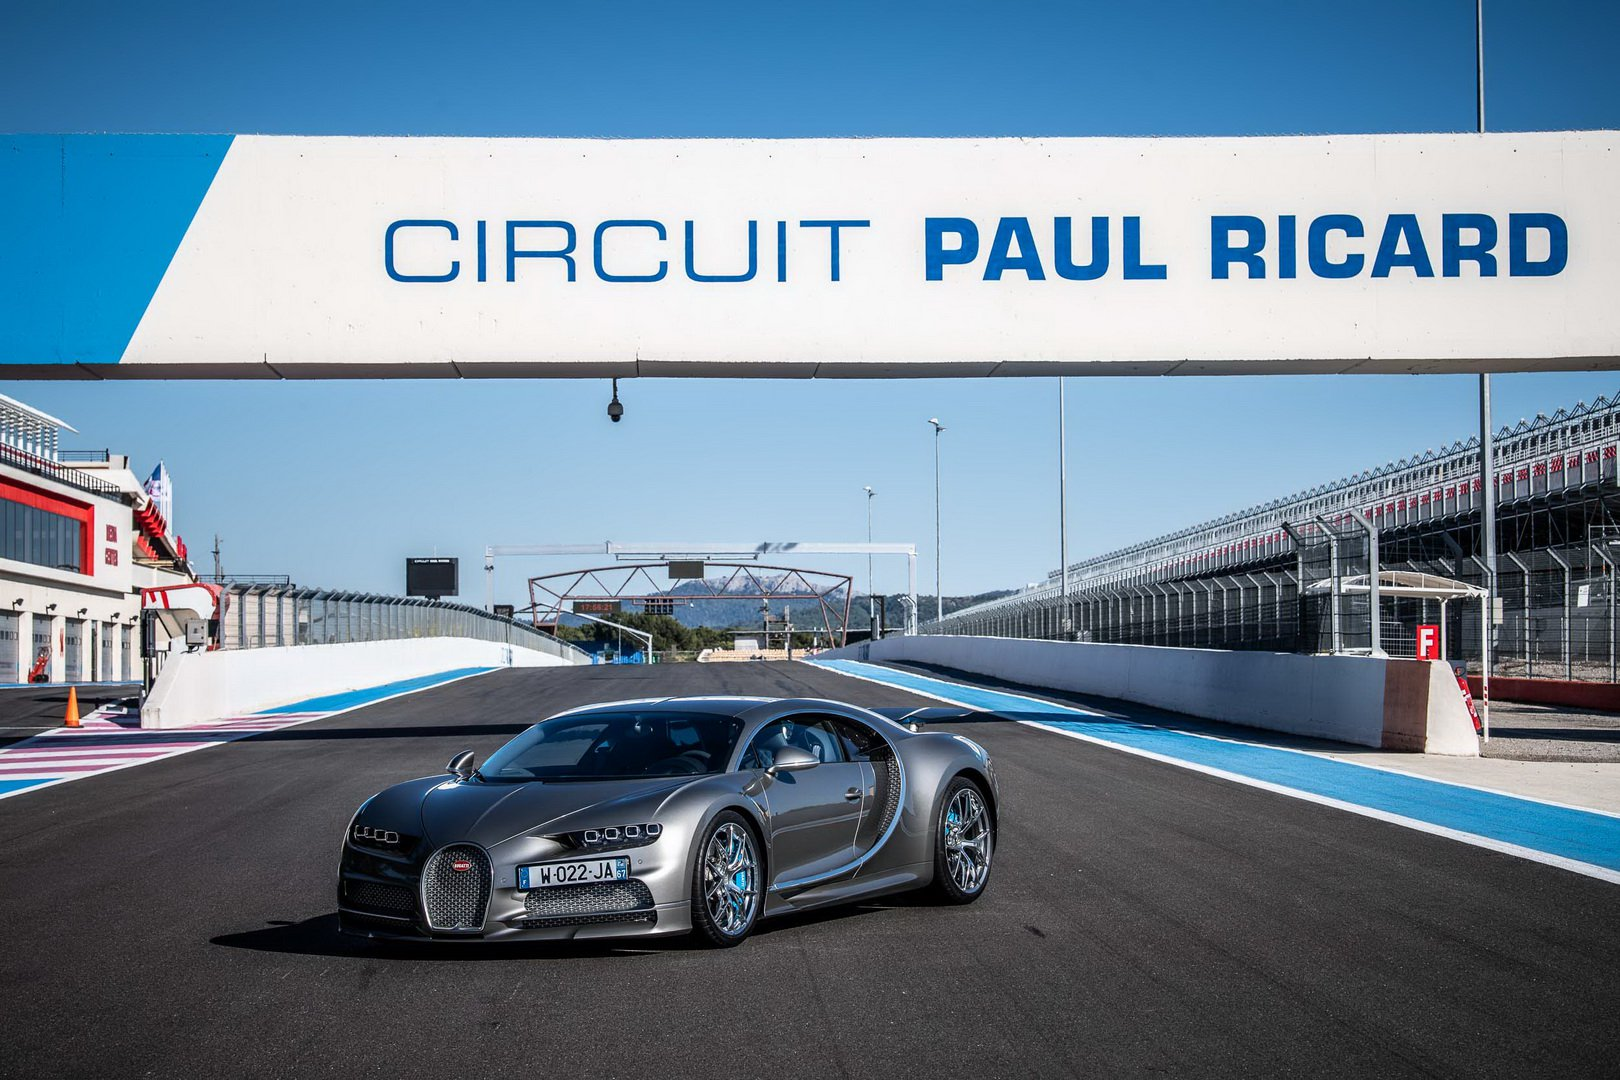 Bugatti-Chiron-and-Chiron-Sport-at-Paul-Ricard-Circuit-4